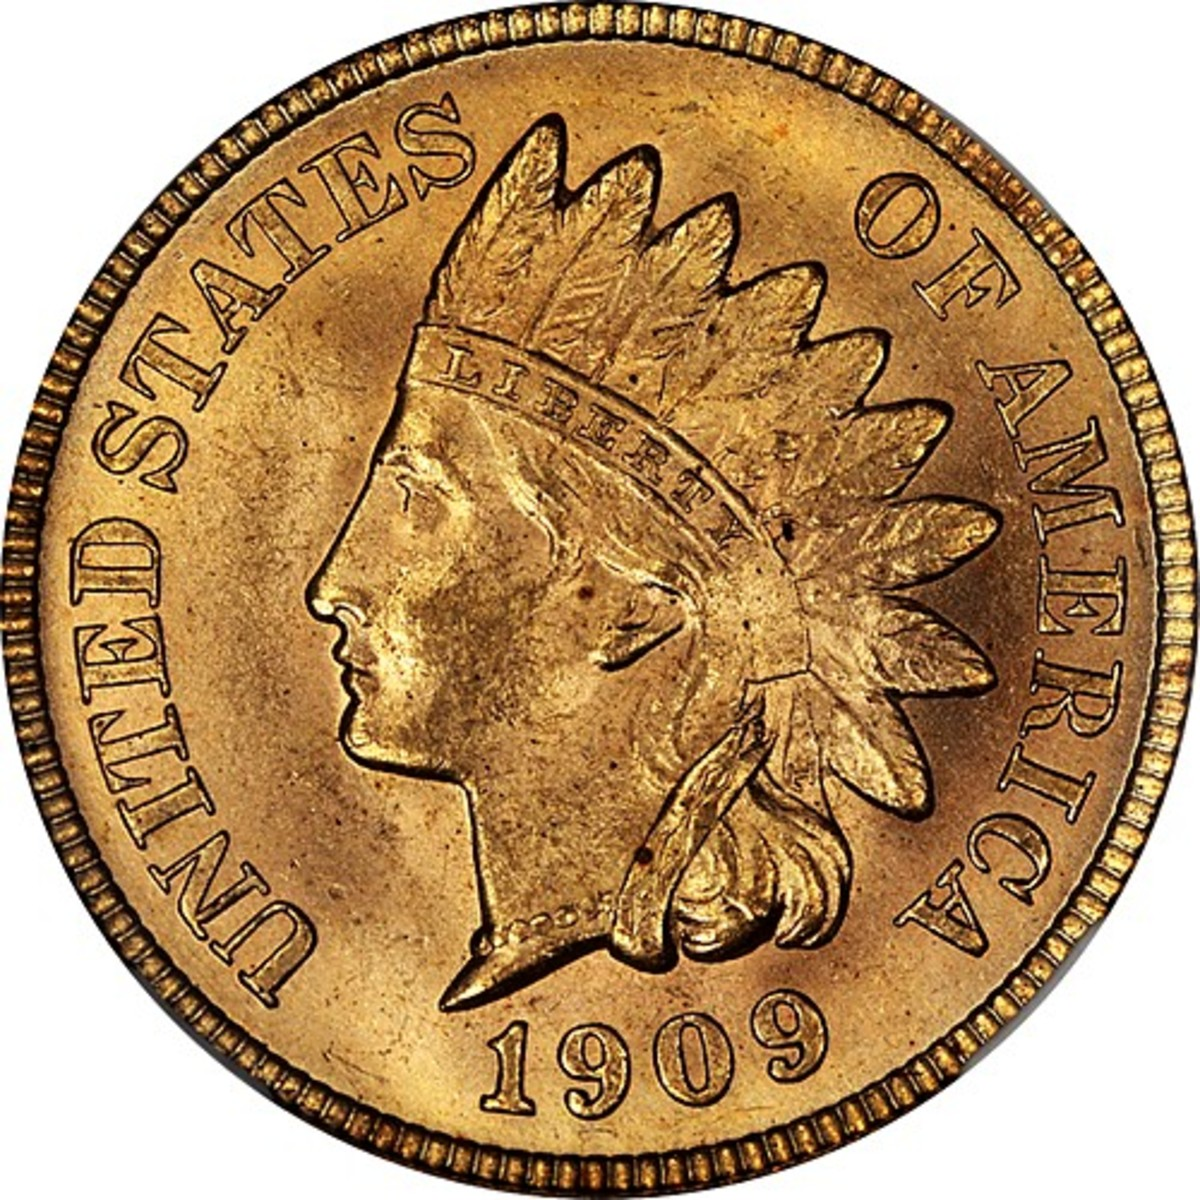 A Beginner's Guide to Starting a Coin Collection